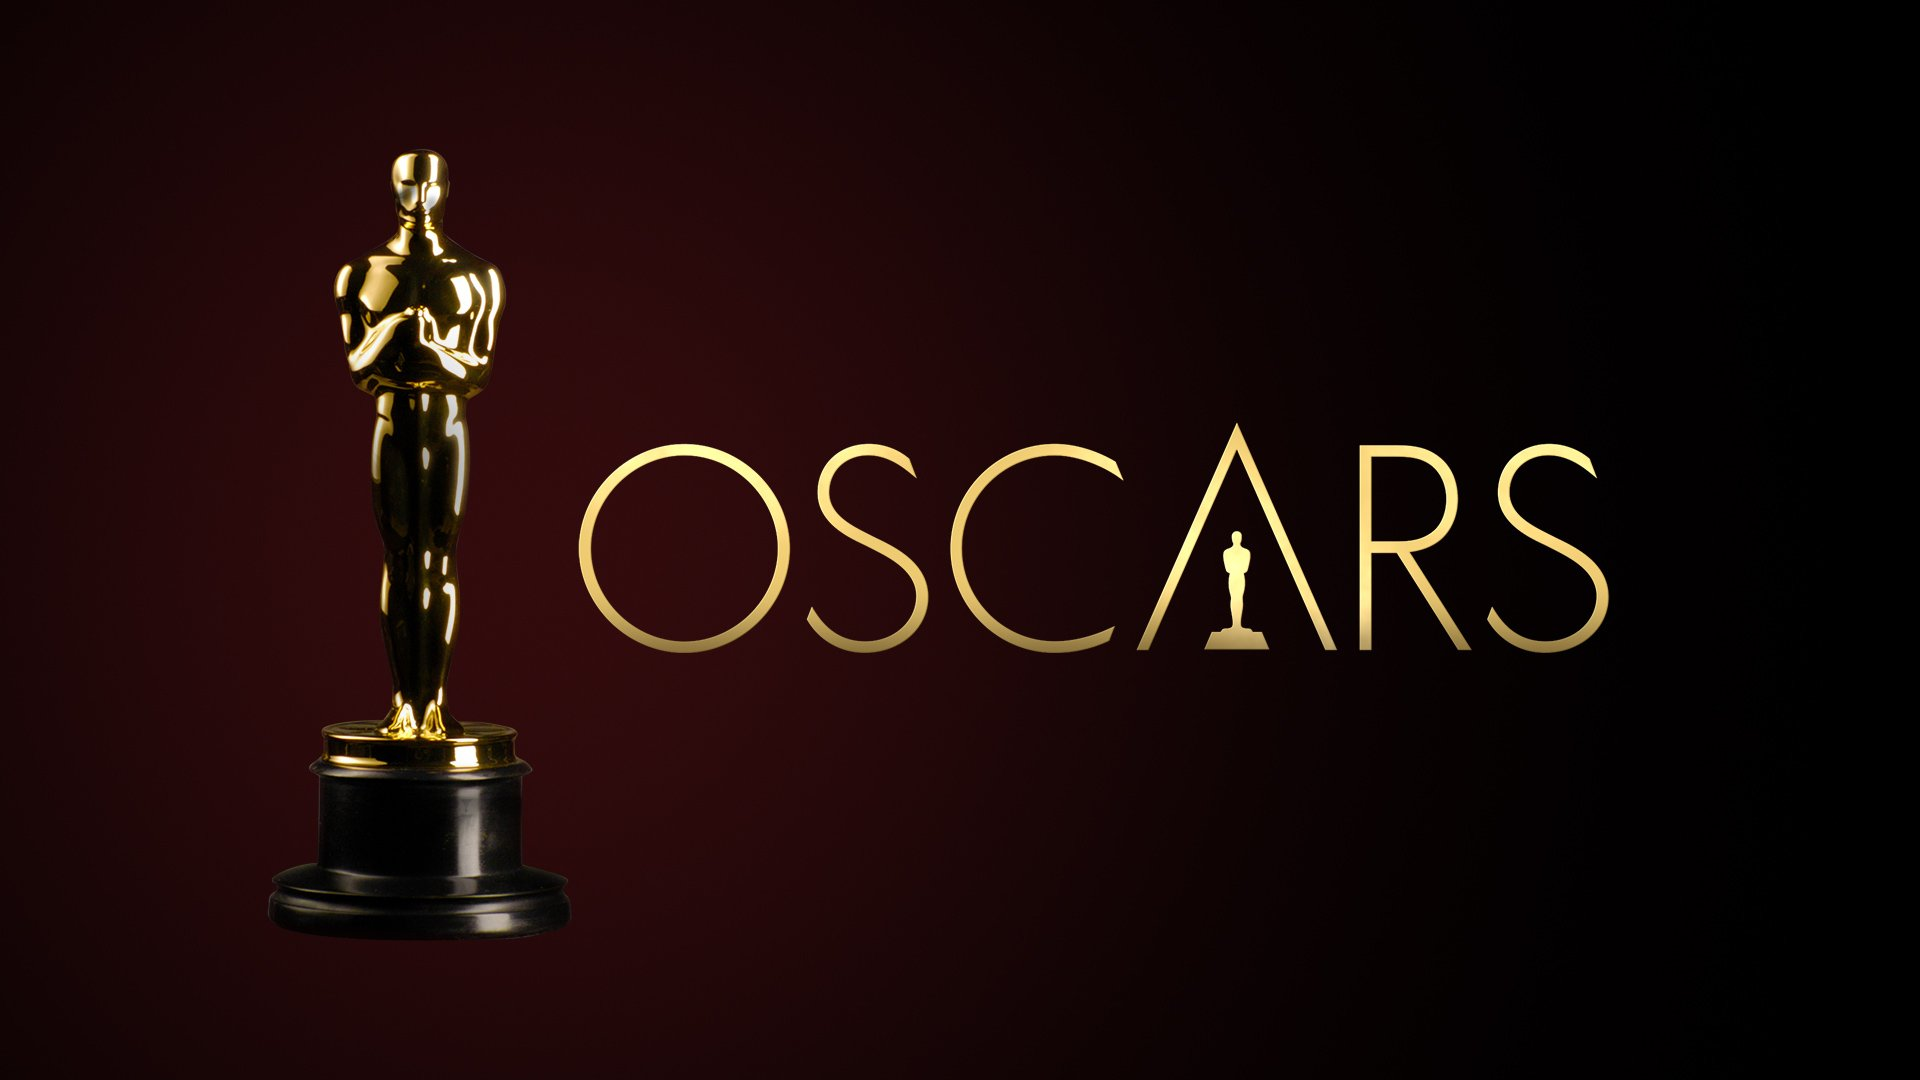 Oscars 2020 Red Carpet How To Watch Start Time   Oscars 2020 1920x1080